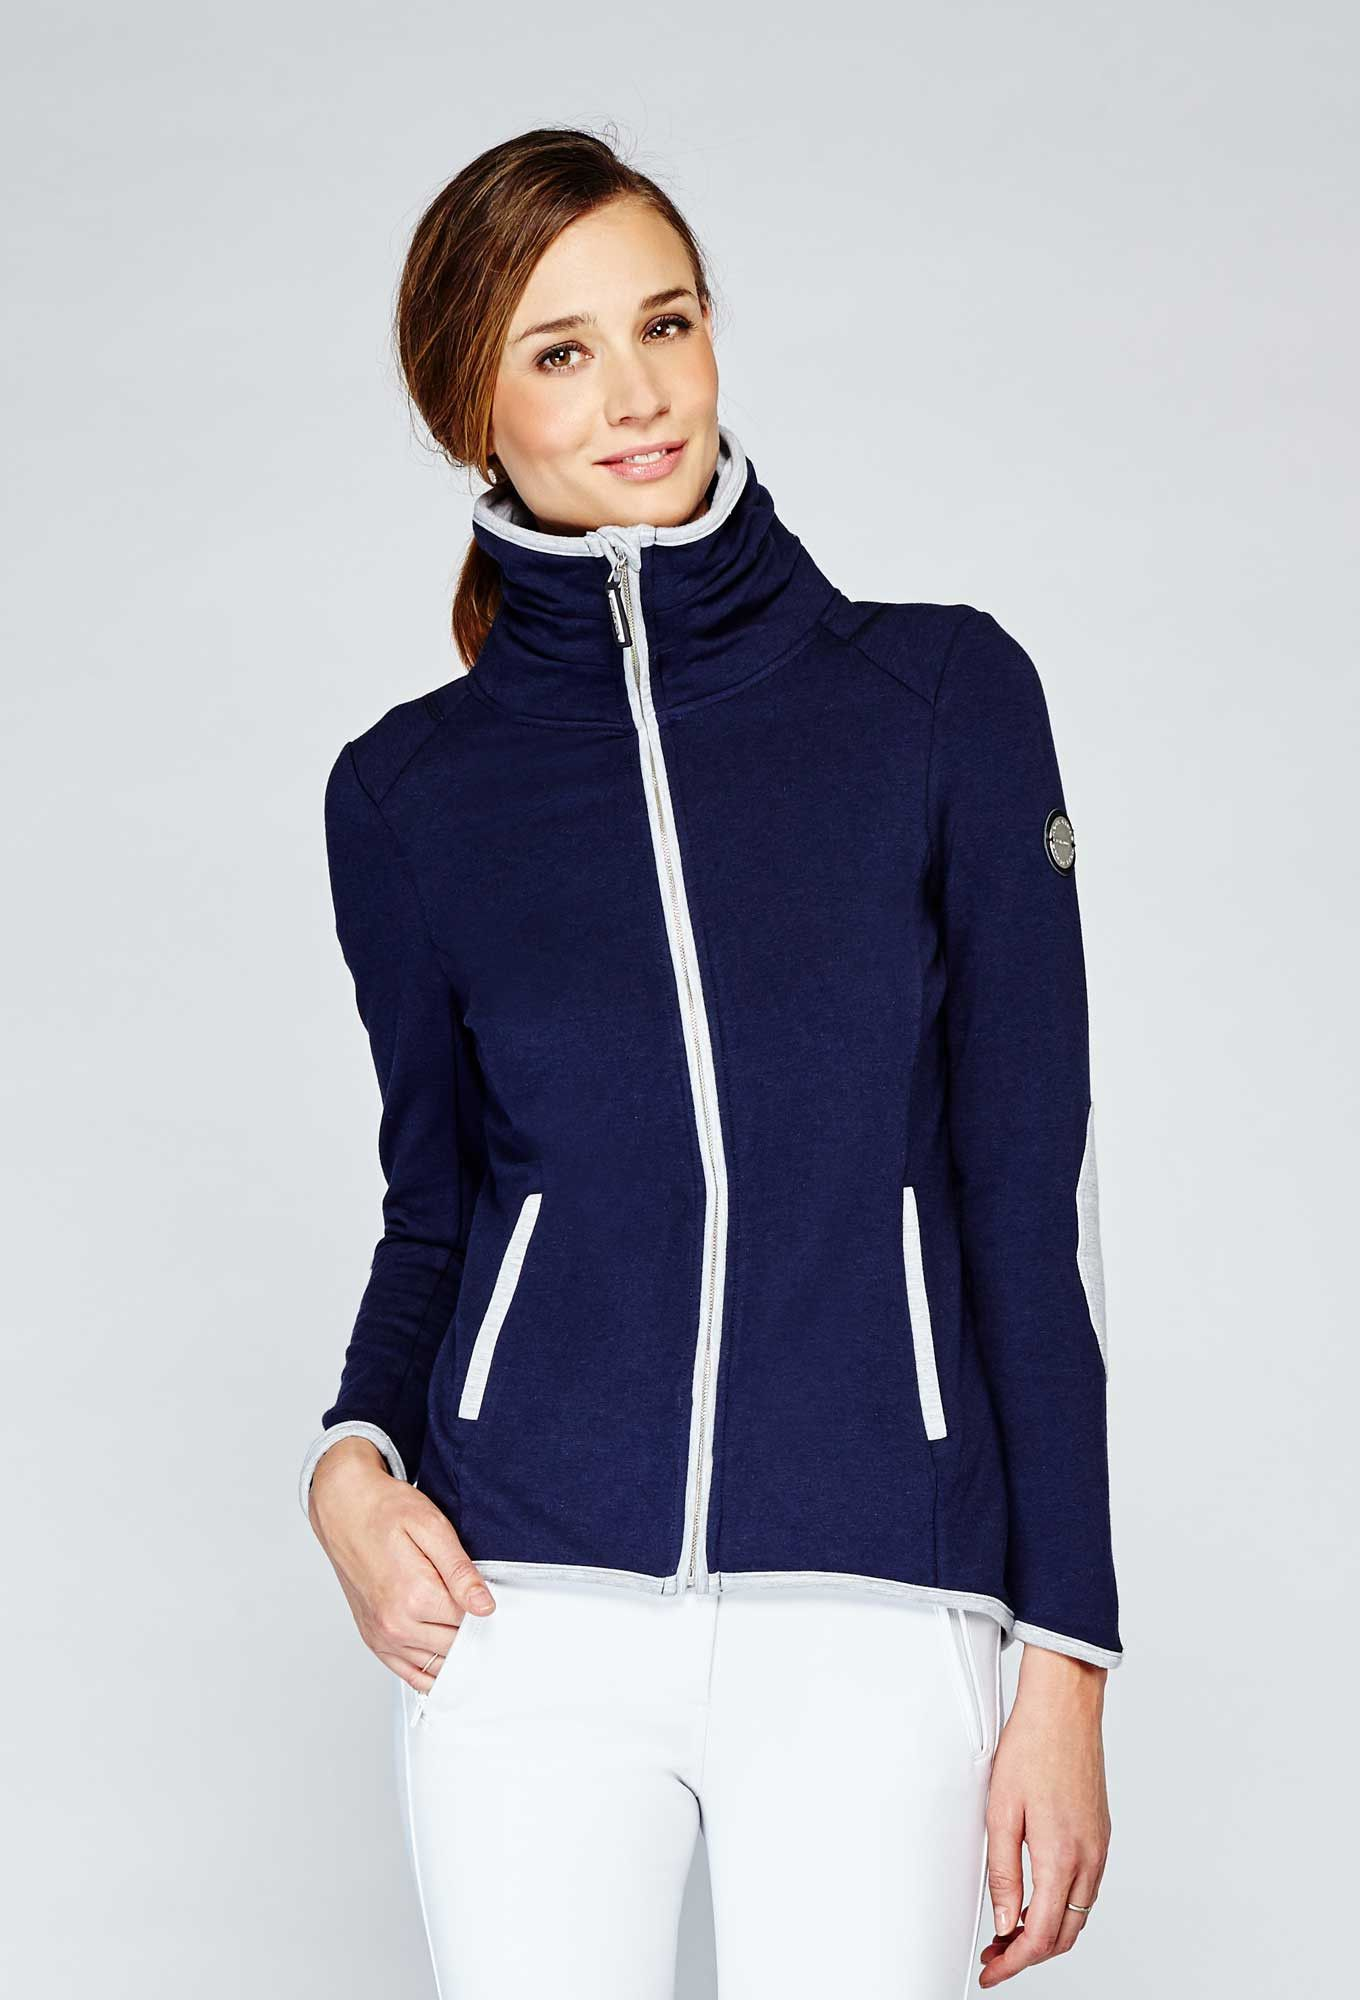 Queenside Tack Is Under Construction Equestrian Outfits Riding Outfit Jackets [ 2000 x 1360 Pixel ]